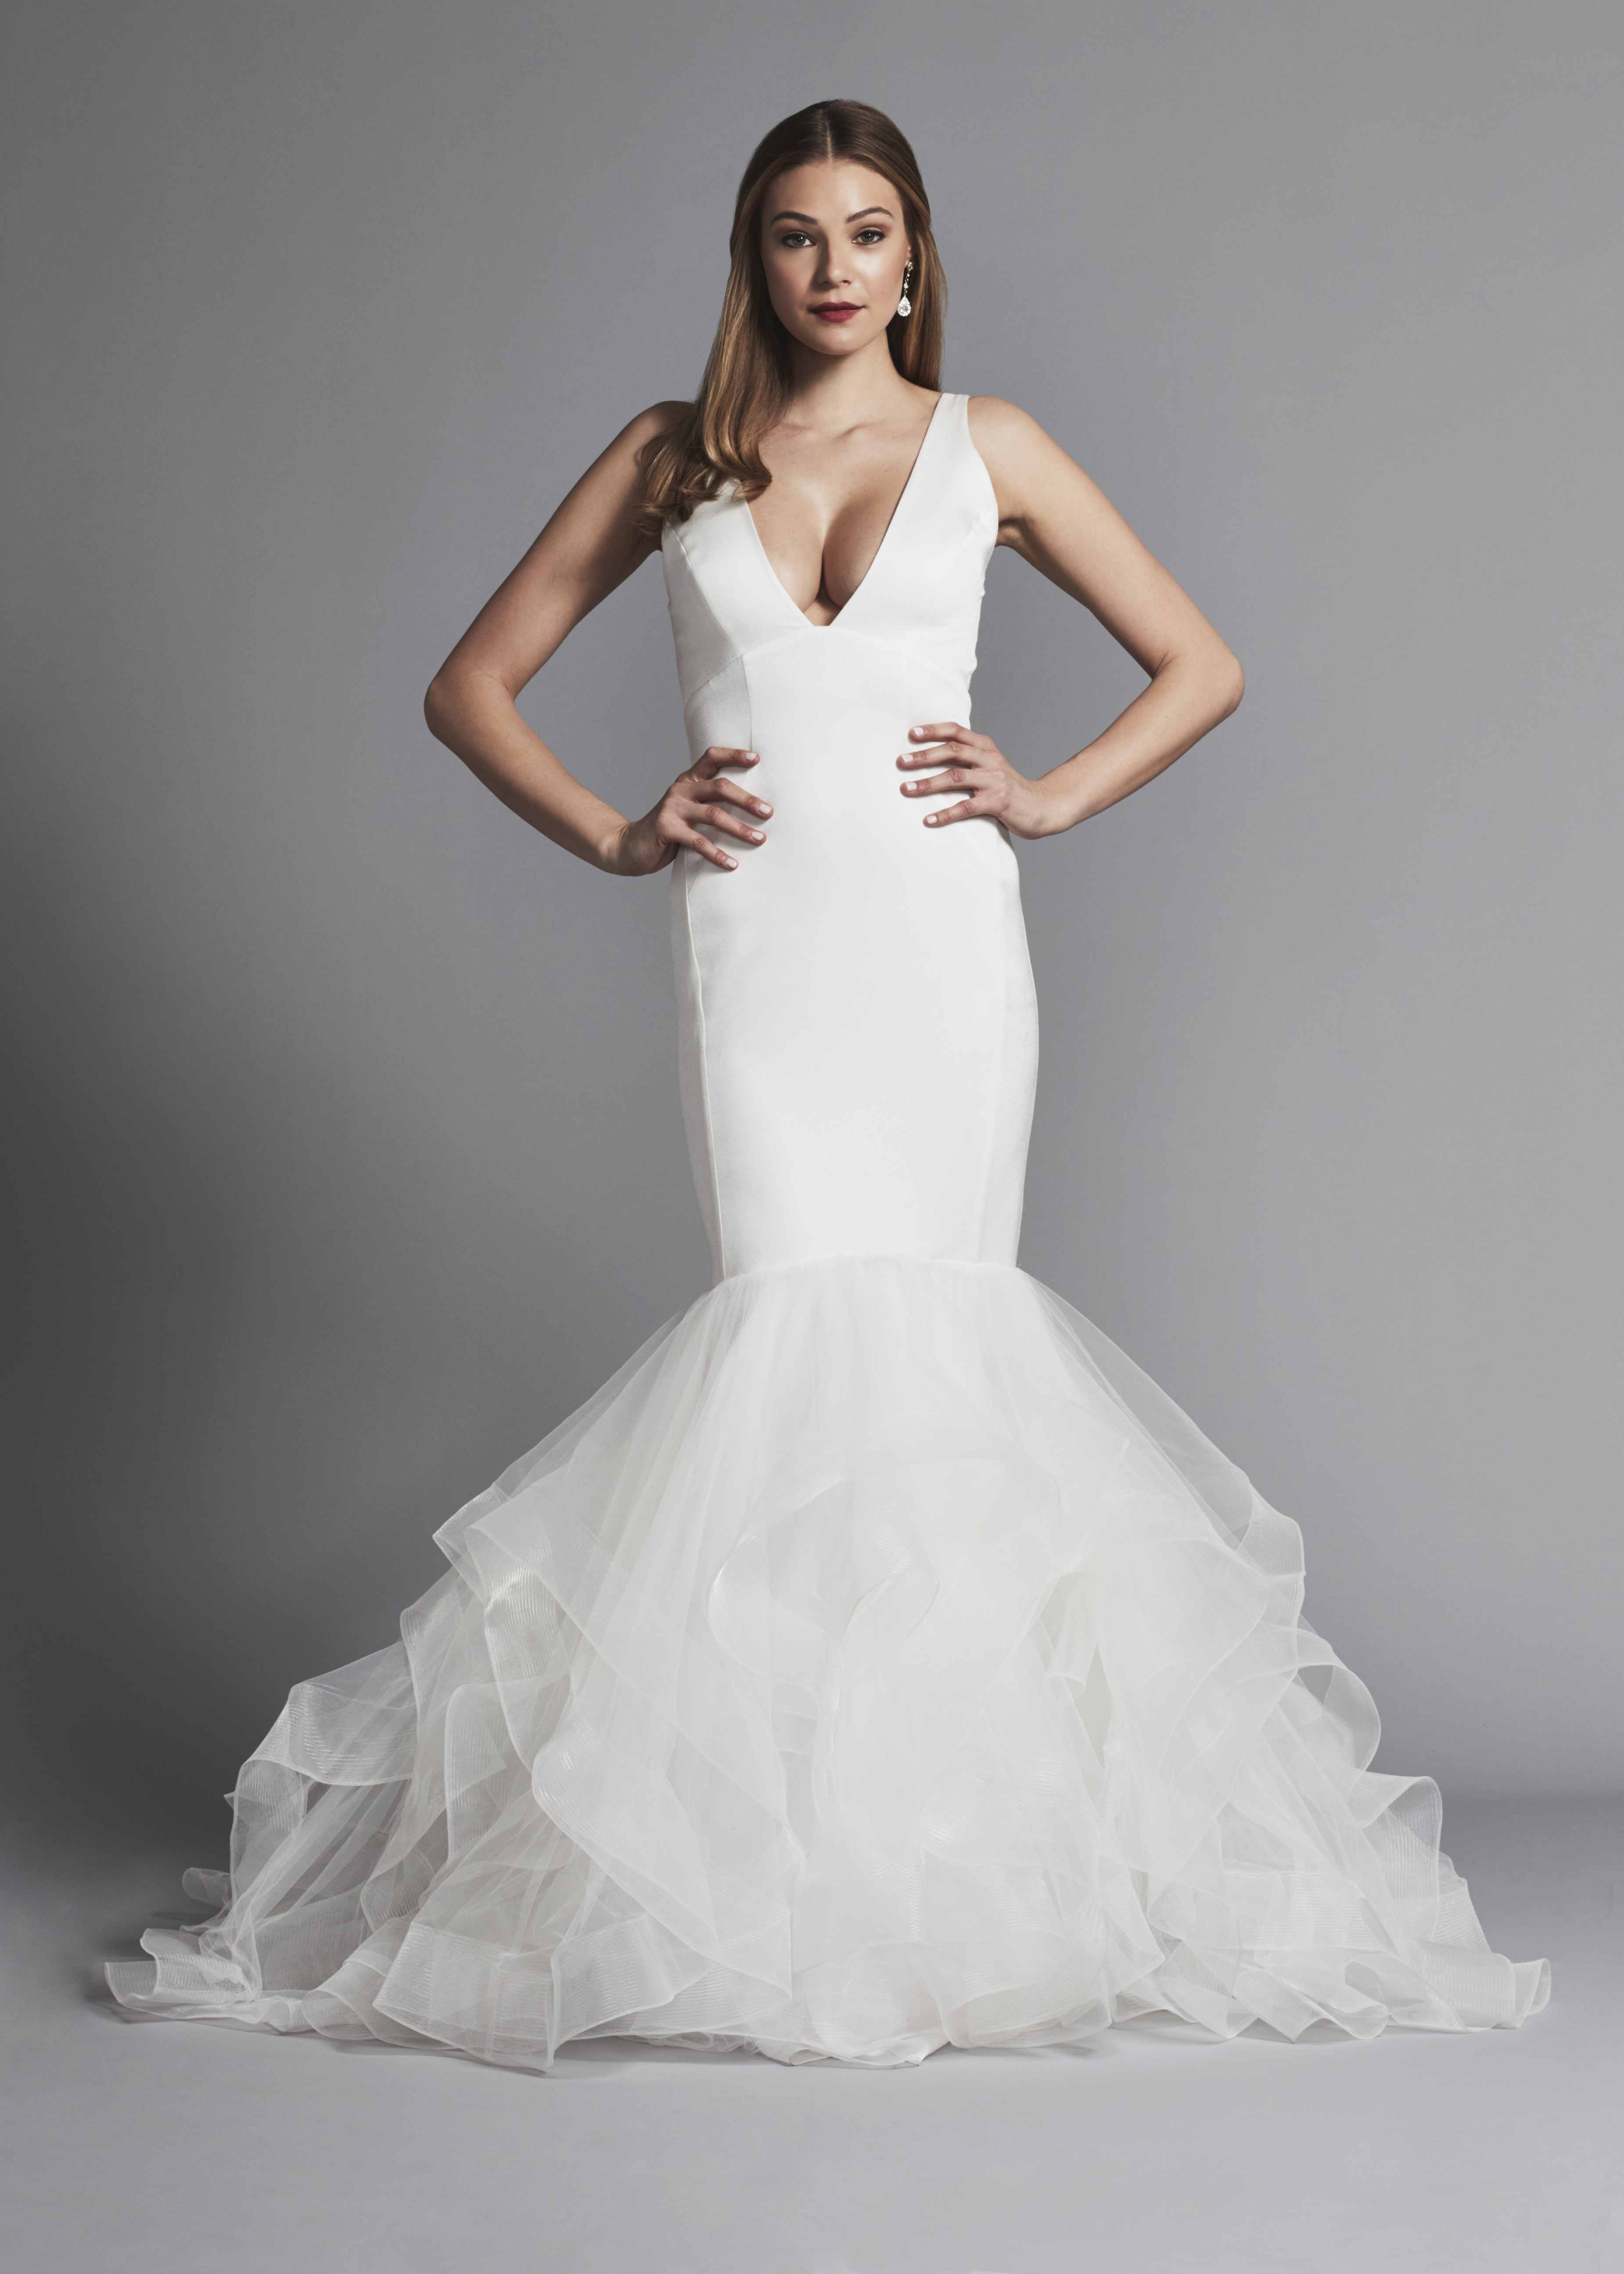 Tornai Pnina wedding dresses mermaid pictures best photo